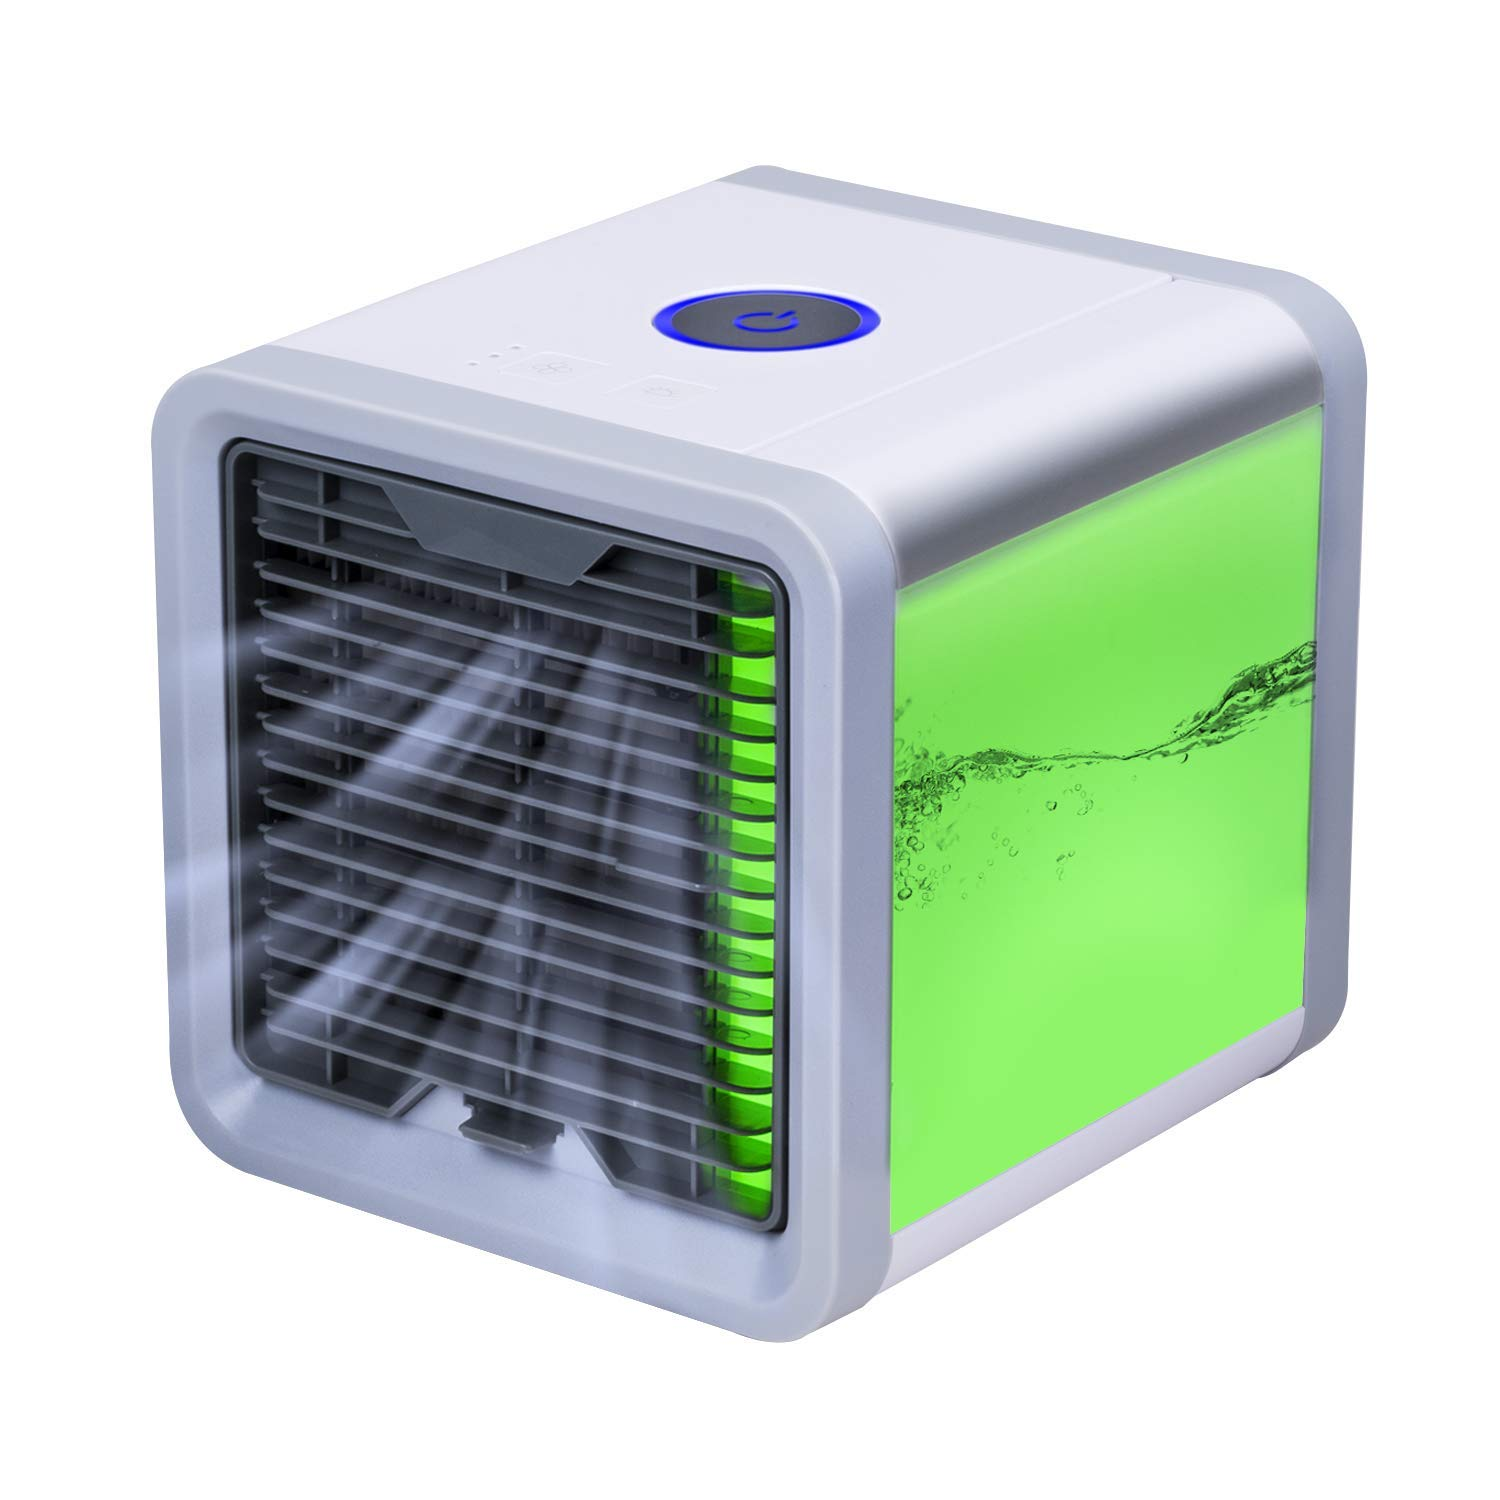 0497bb6db Get Quotations · YACHANCE Personal Space air Cooler Portable air  Conditioner Fan evaporative Cooler Desk Fan Mini Small ac